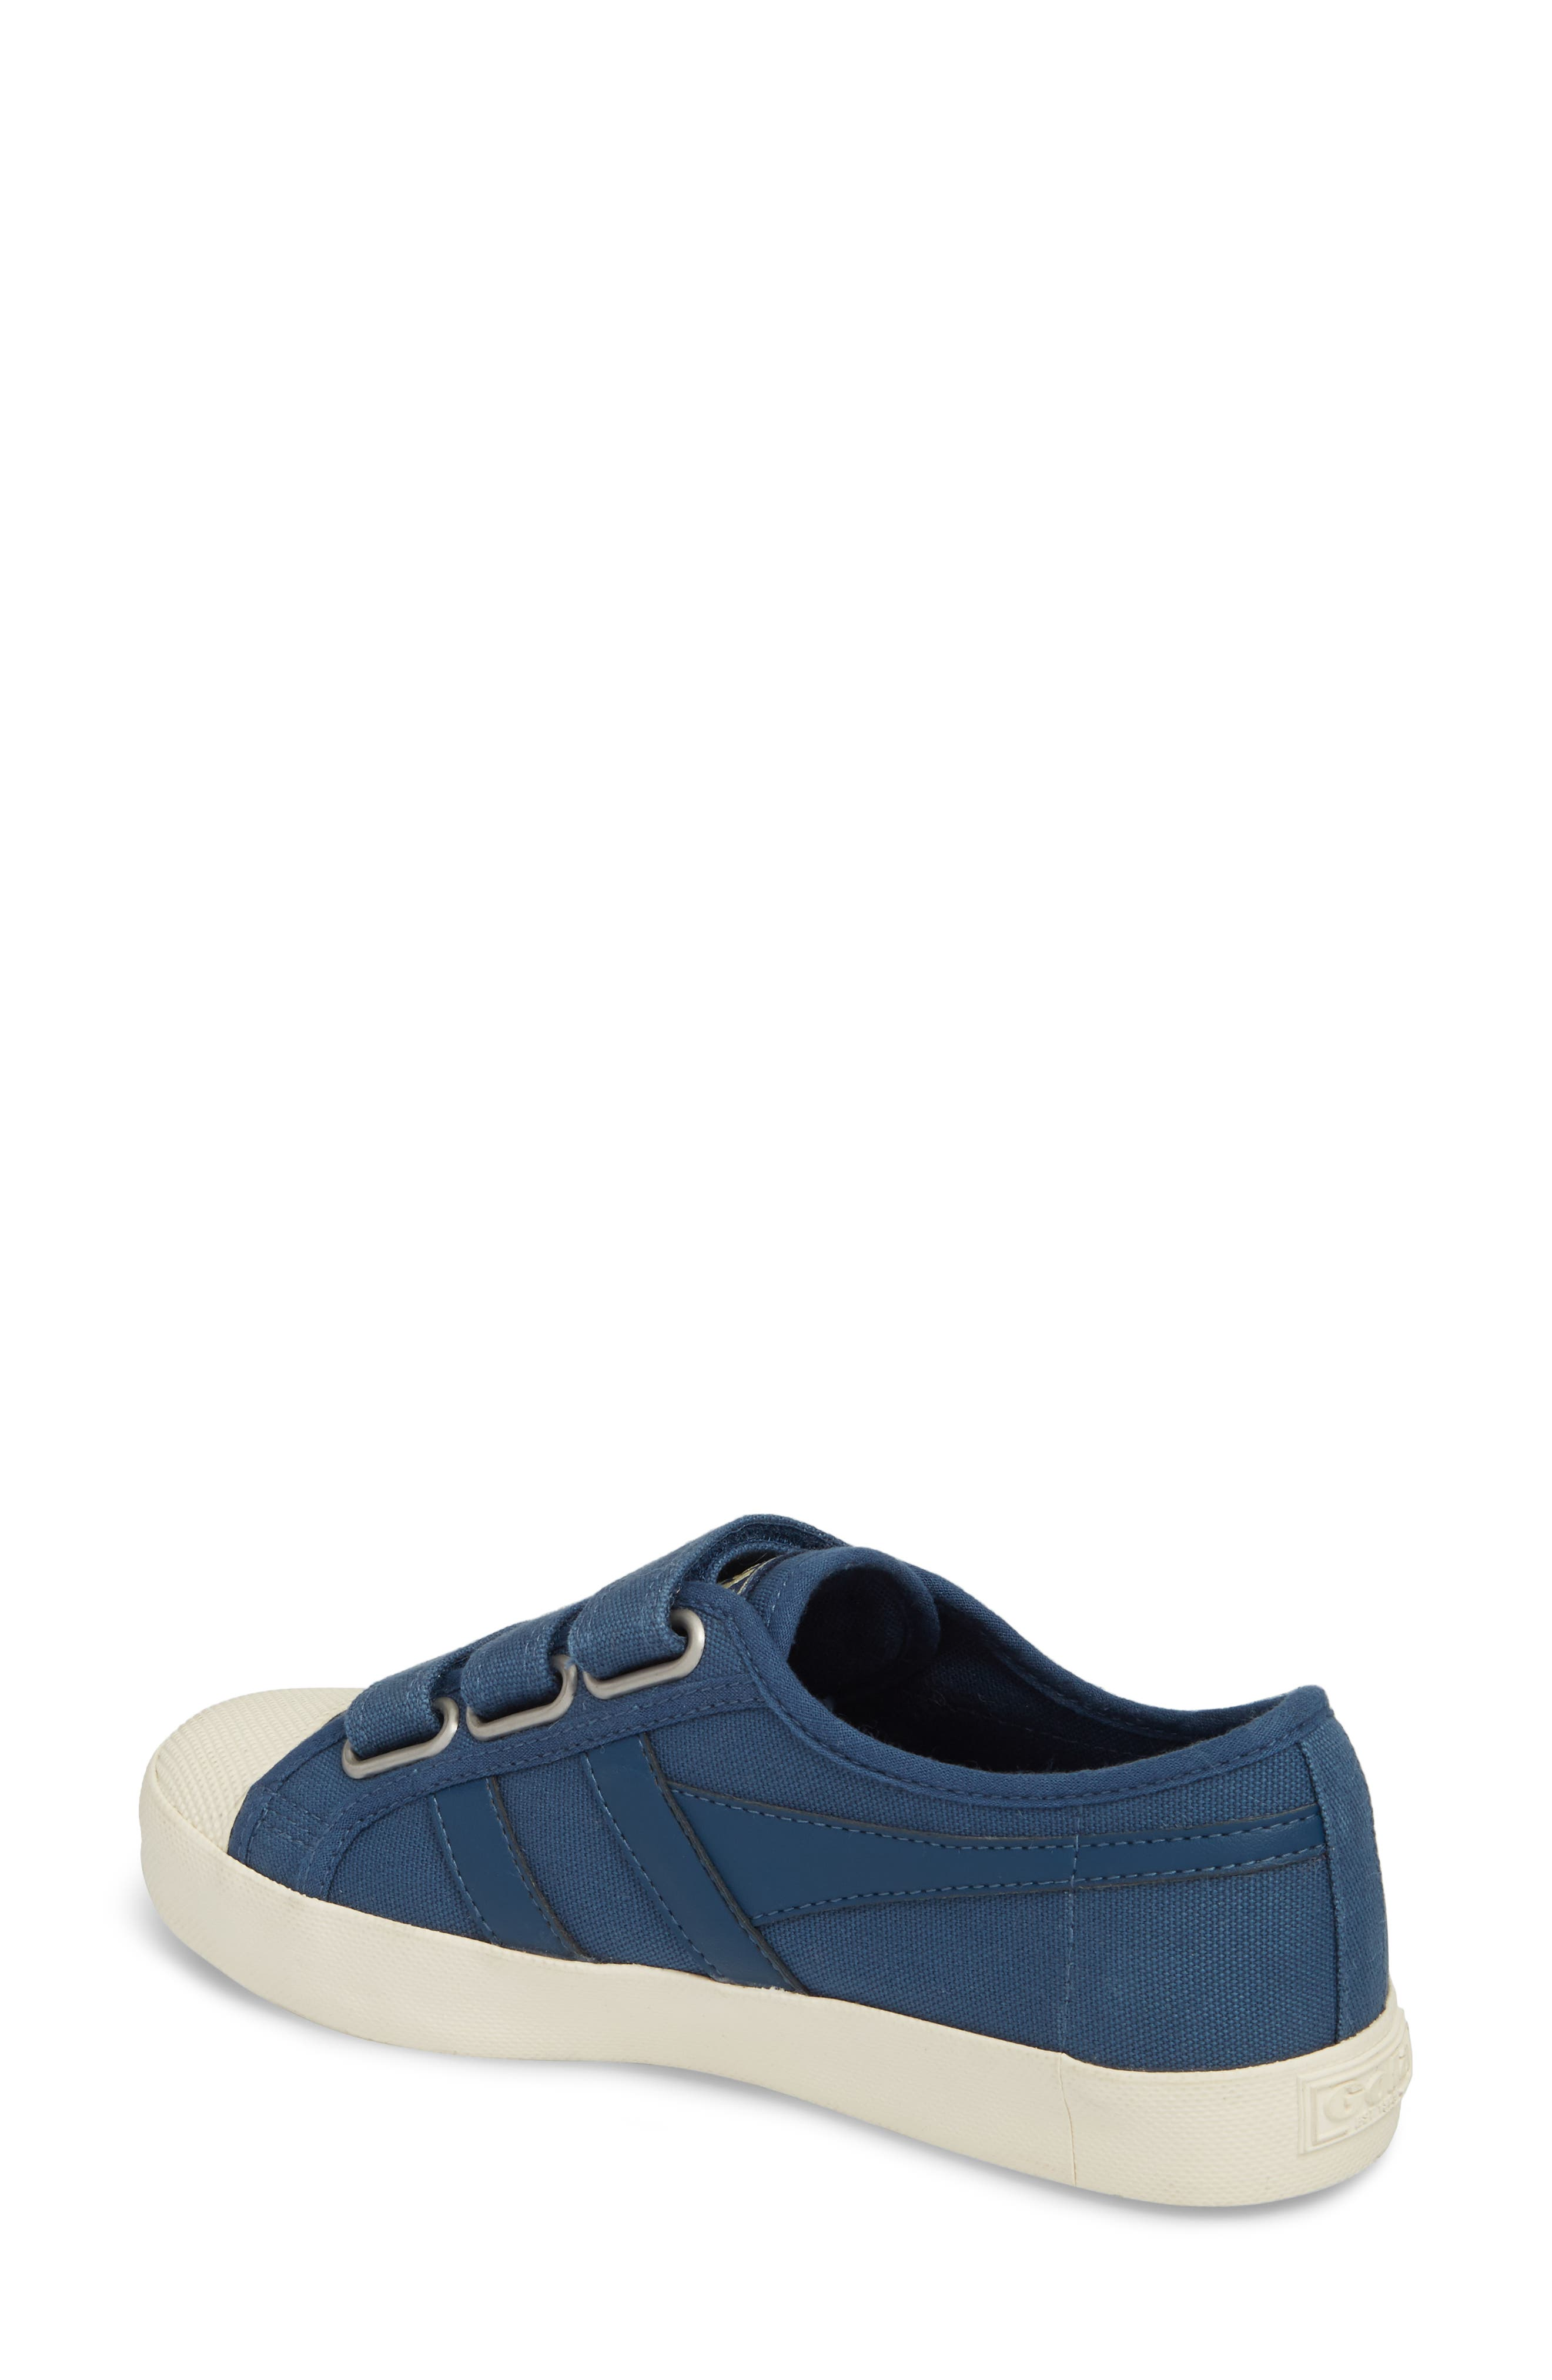 Coaster Low Top Sneaker,                             Alternate thumbnail 2, color,                             Baltic/ Off White